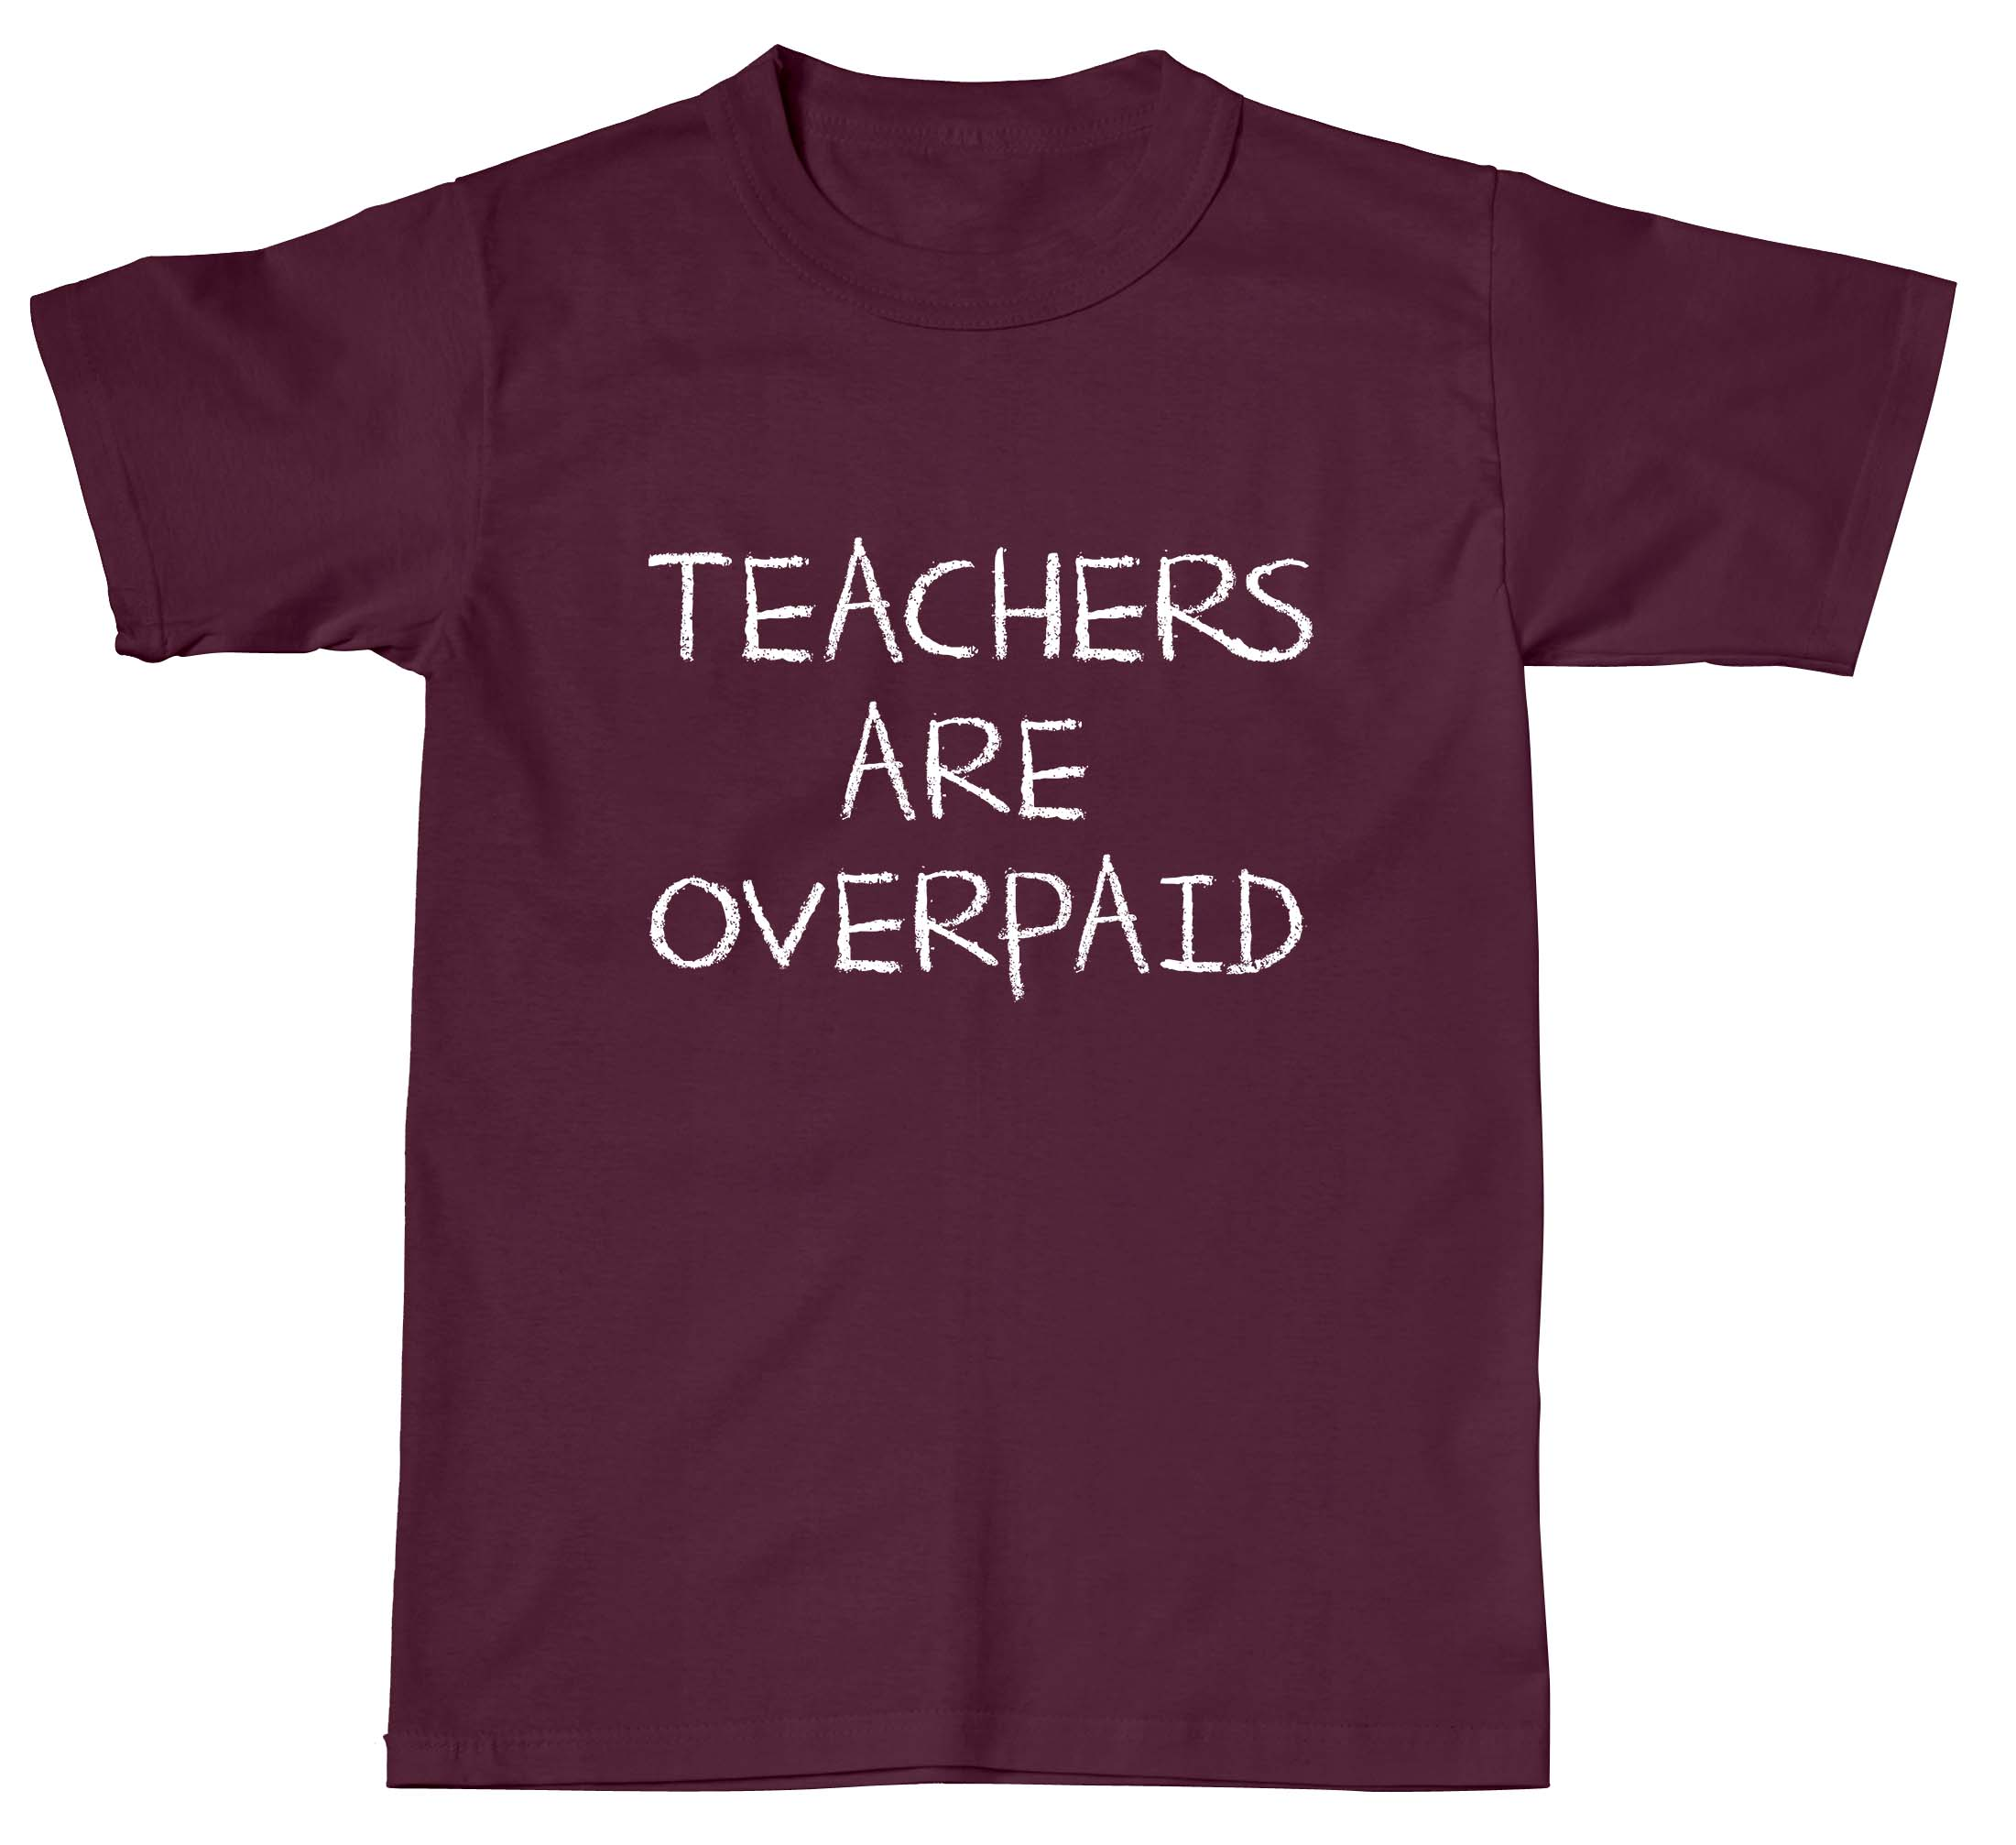 Teachers Are Overpaid Daring Funny Support